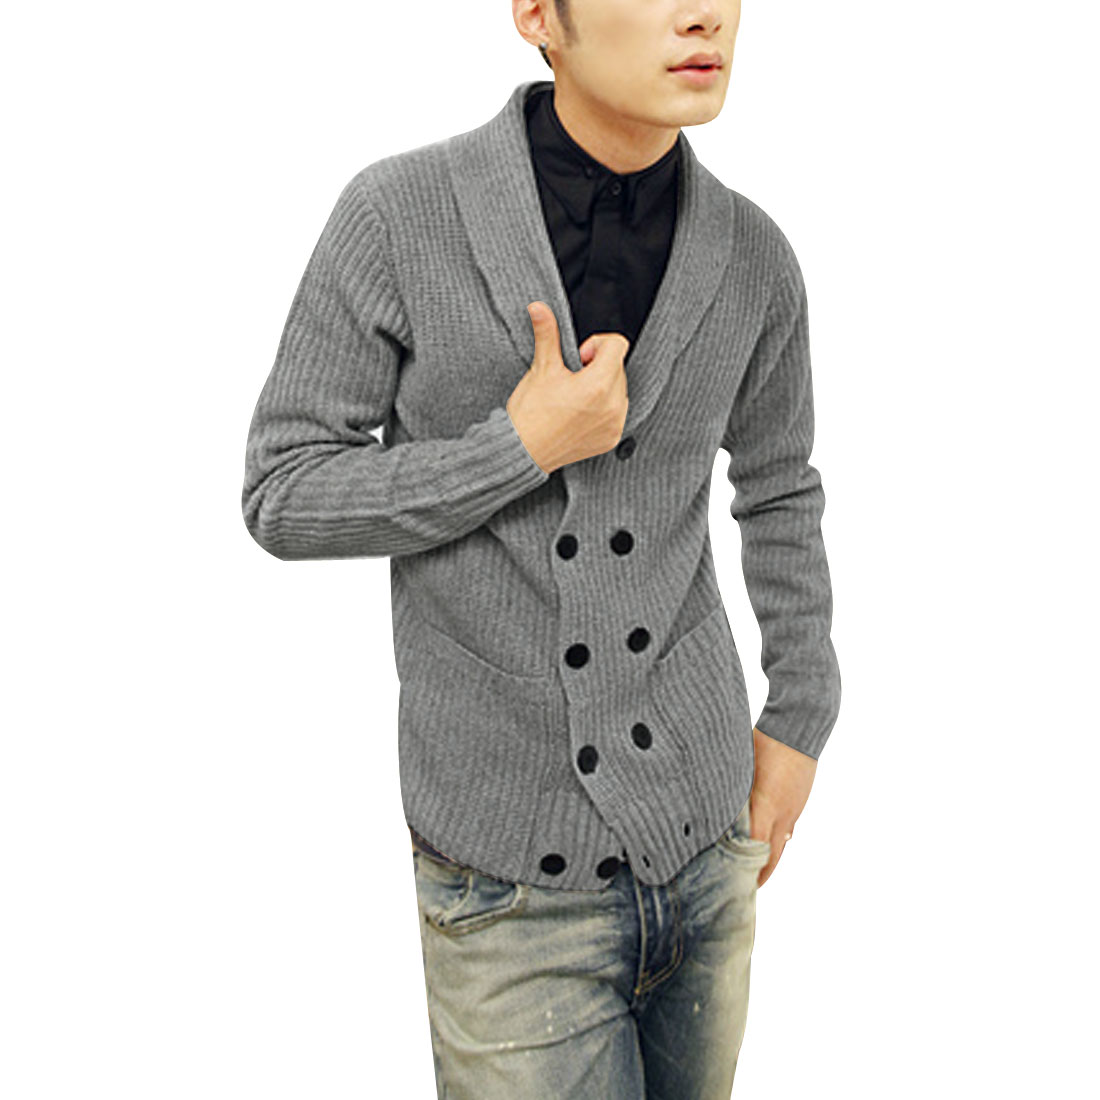 Men Stylish Gray Shawl Collar Long SLeeve Double Breasted Two Pockets Front Sweater S